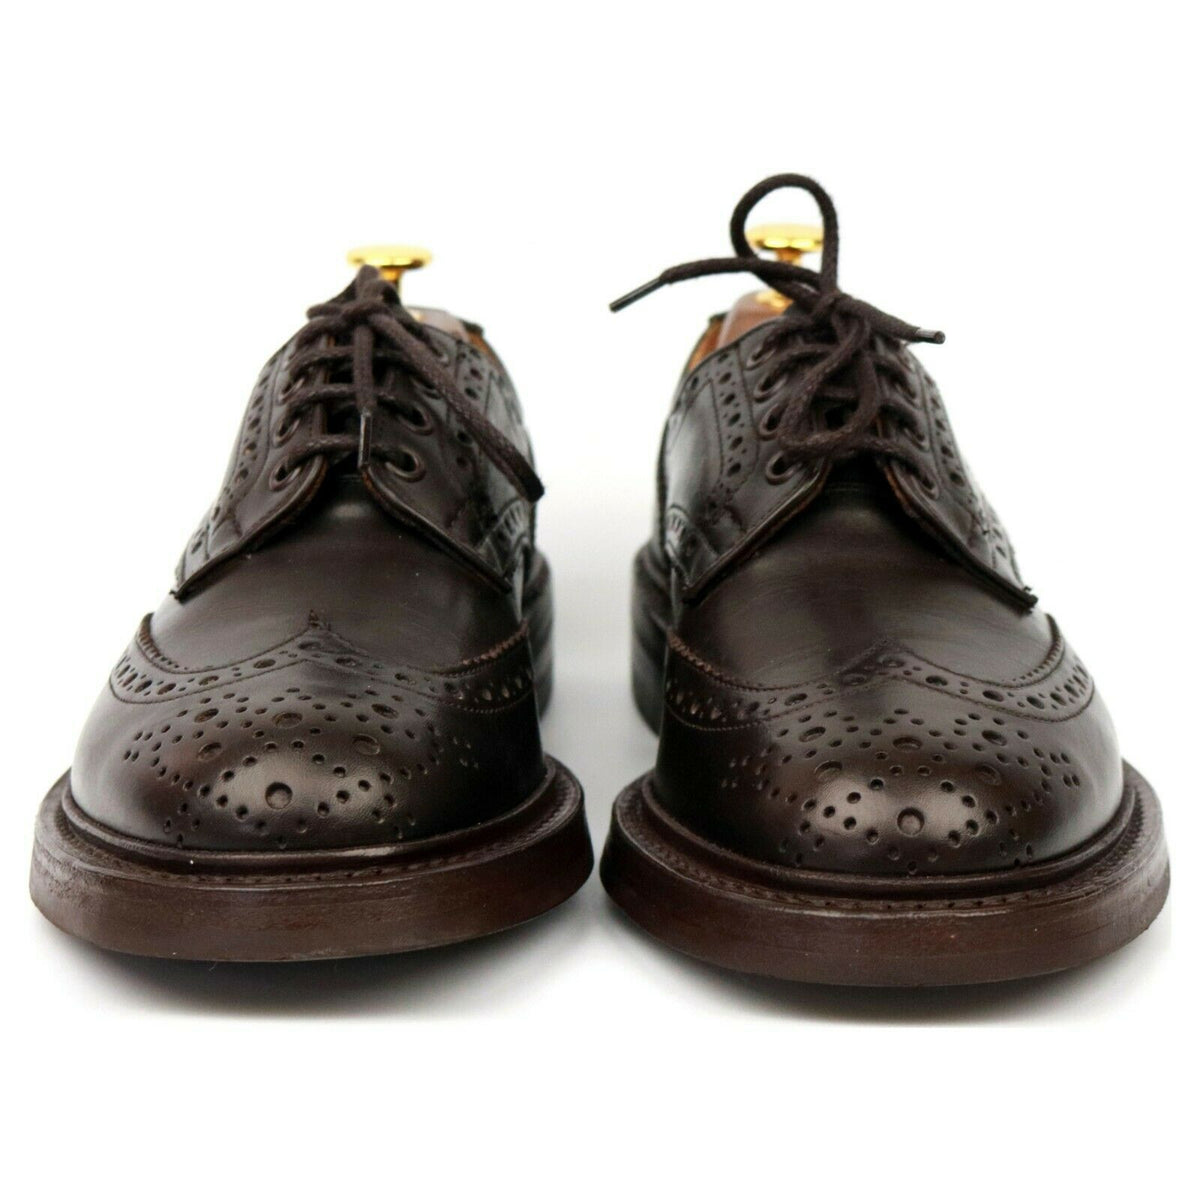 Tricker's 'Bourton' Brown Leather Country Derby Brogues UK 6.5